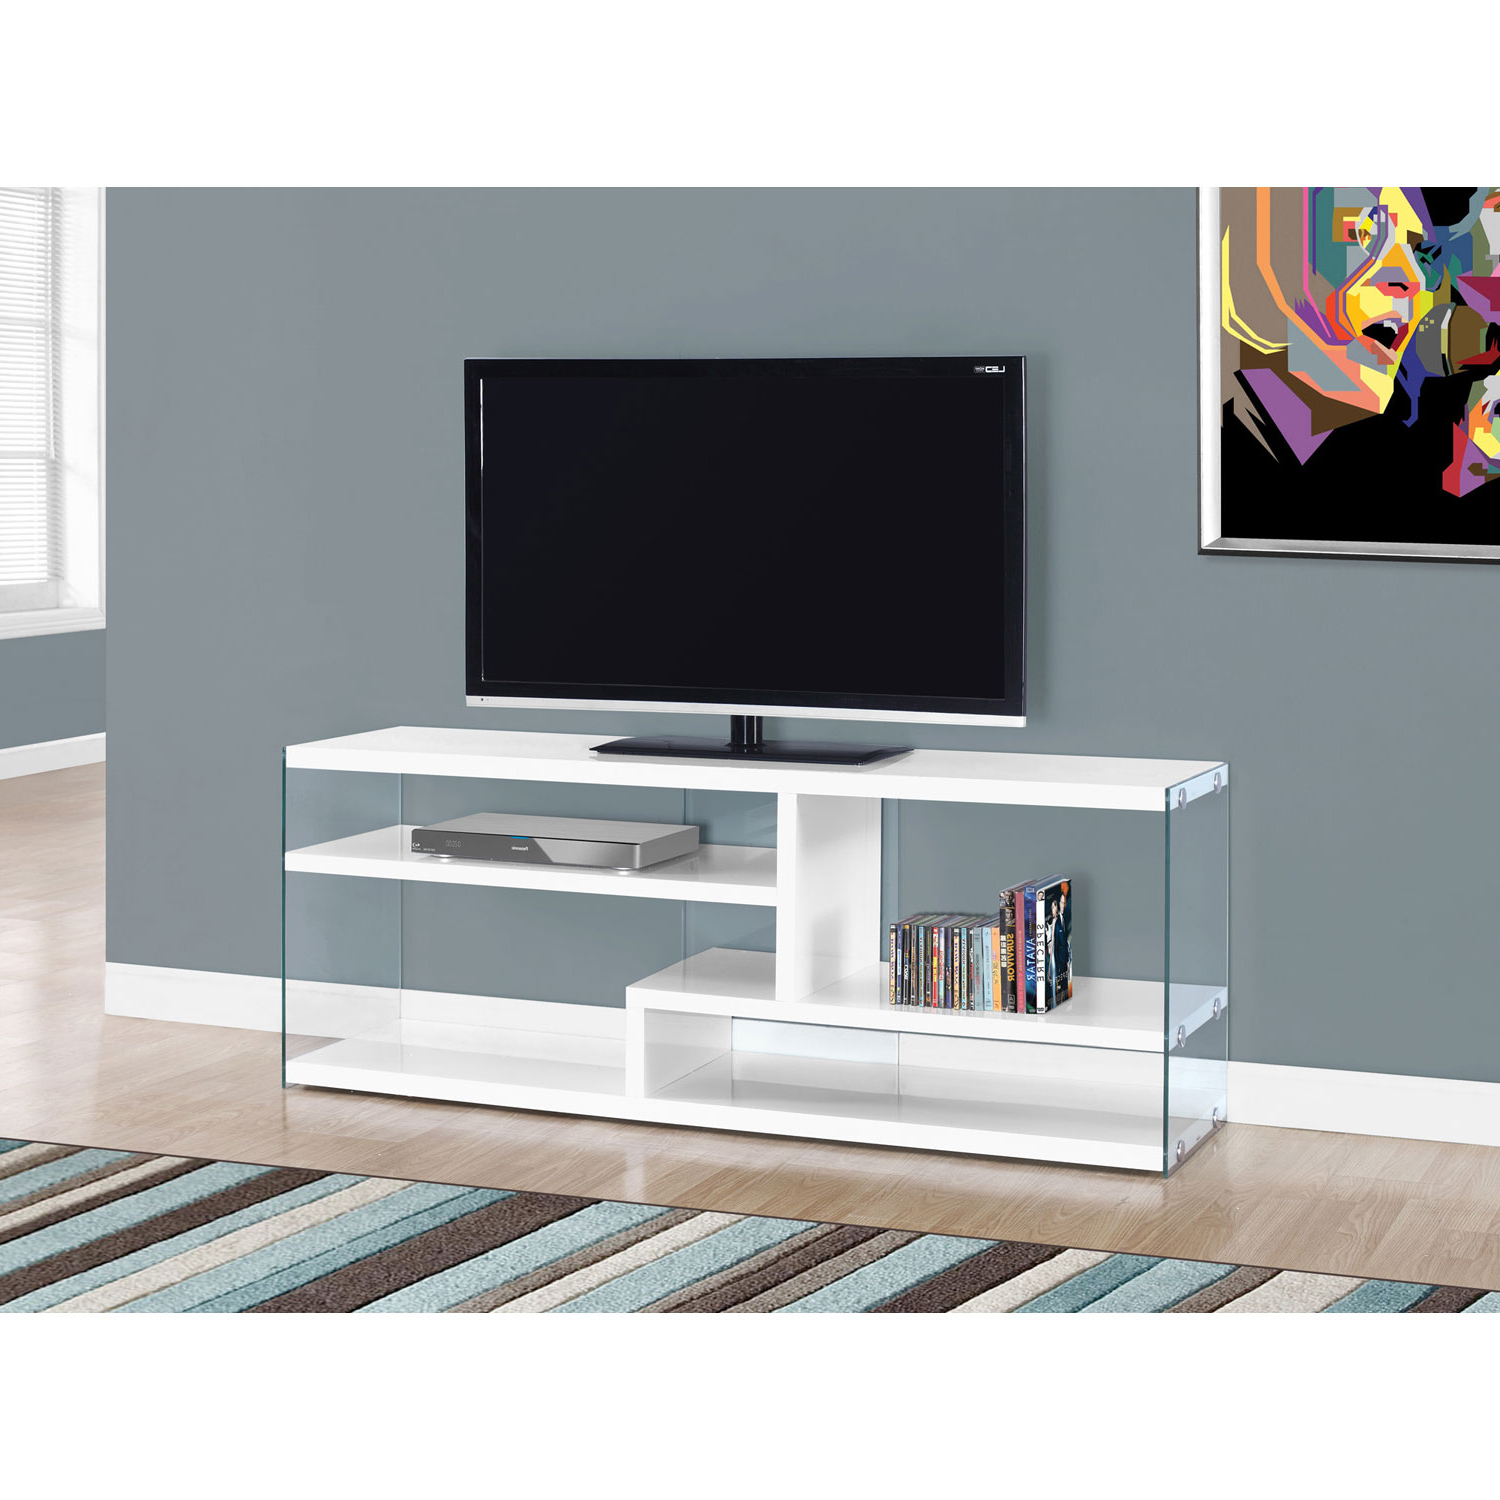 Hawthorne Ave Tv Stand 60l / Glossy White With Tempered Glass I 2690 Throughout Noah 75 Inch Tv Stands (View 7 of 20)